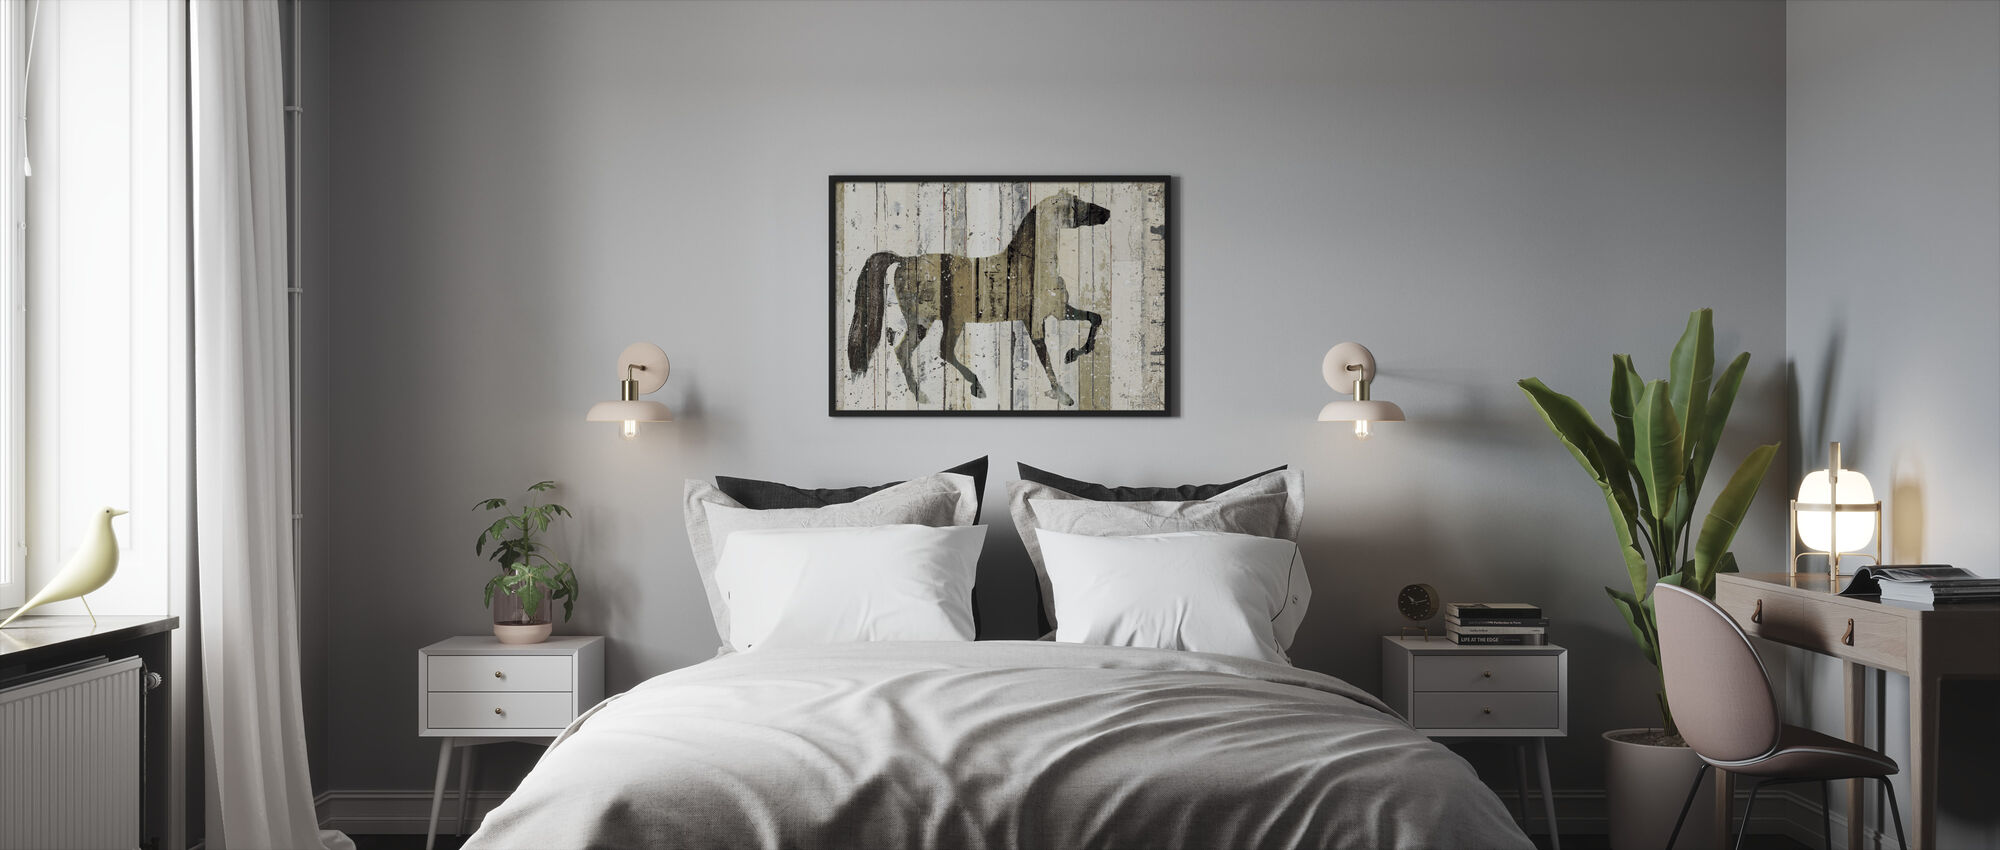 Dark Horse - Framed print - Bedroom